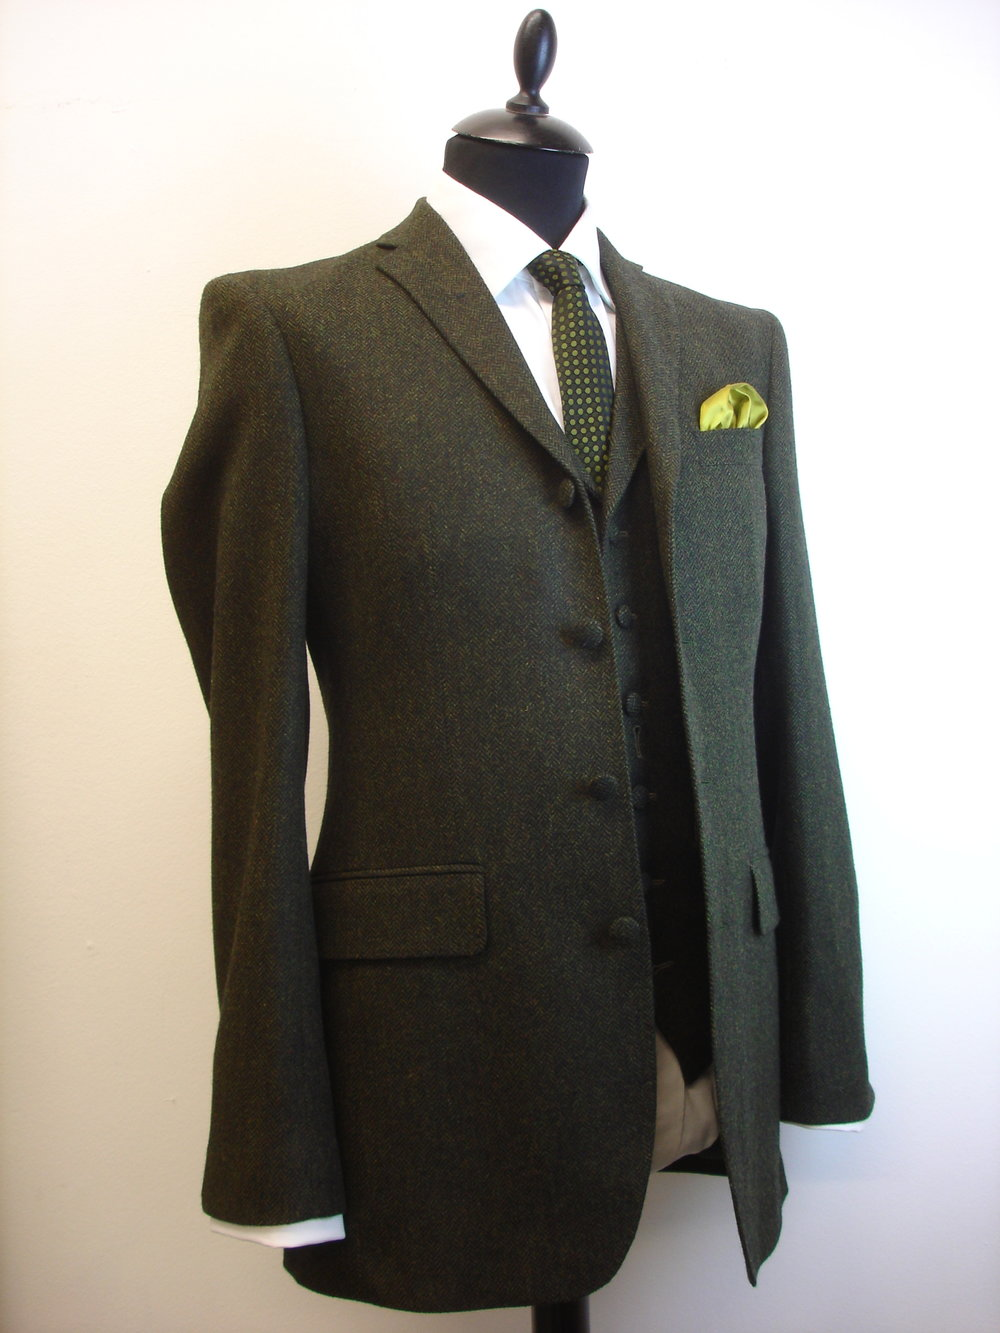 3 piece green lambswool herringbone tweed suit (8).JPG